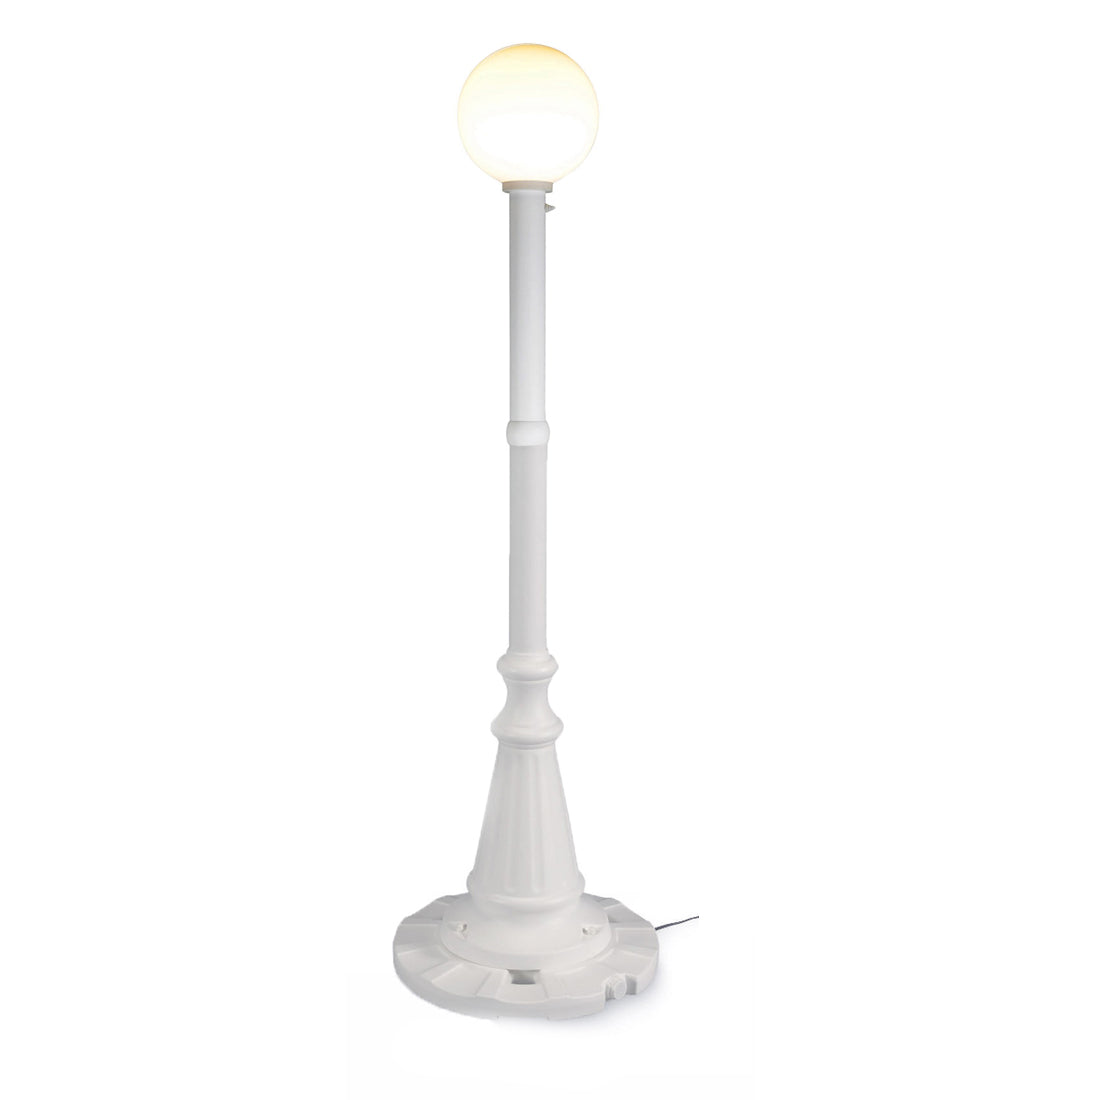 Milano 69001 - White with White Globe Lantern